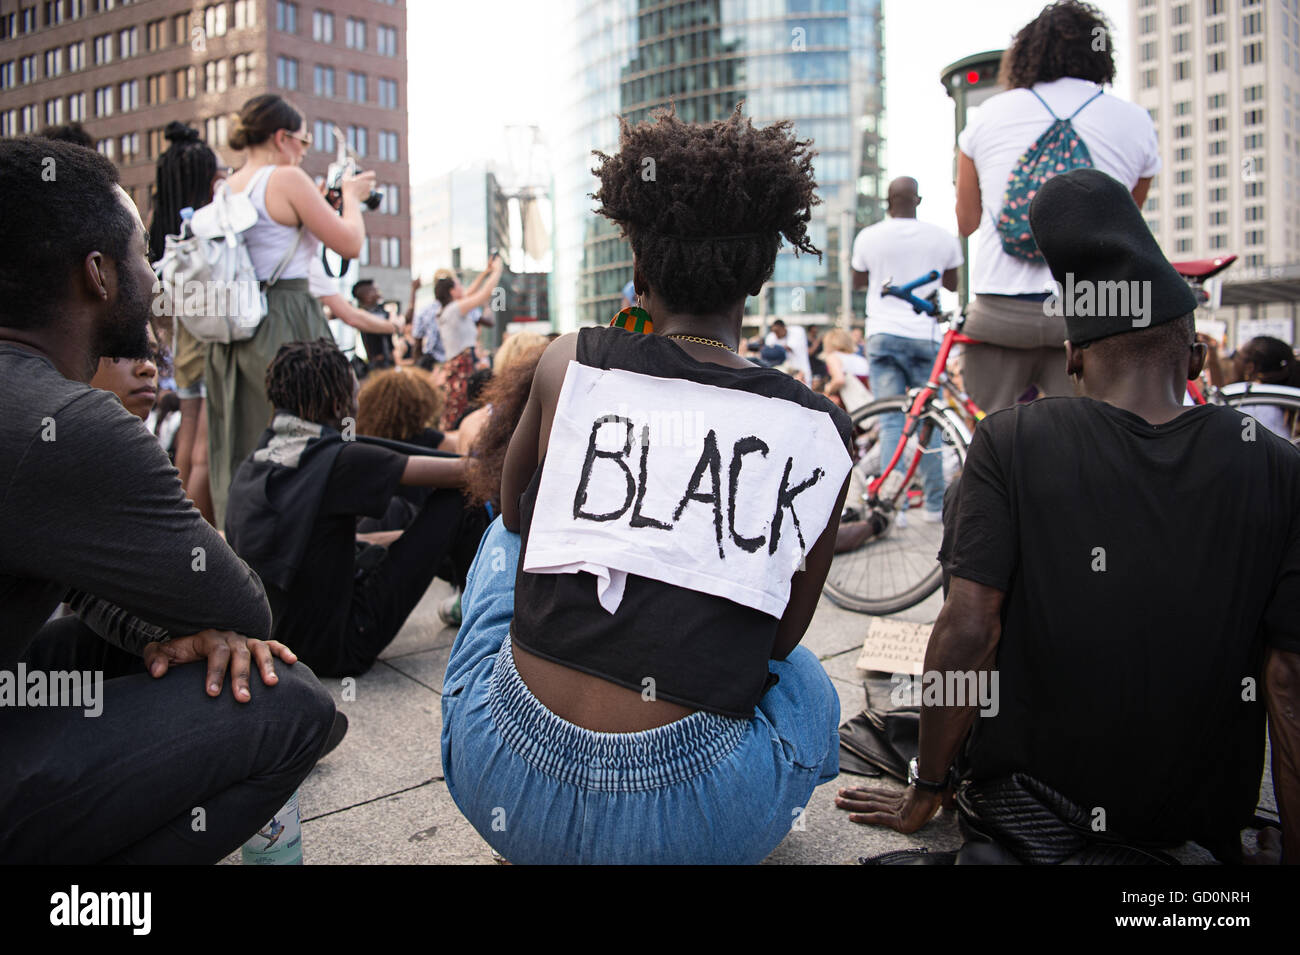 Berlin, Germany. 10th July, 2016. A demonstrator with a sign reading 'Black' at a solidarity demonstration - Stock Image